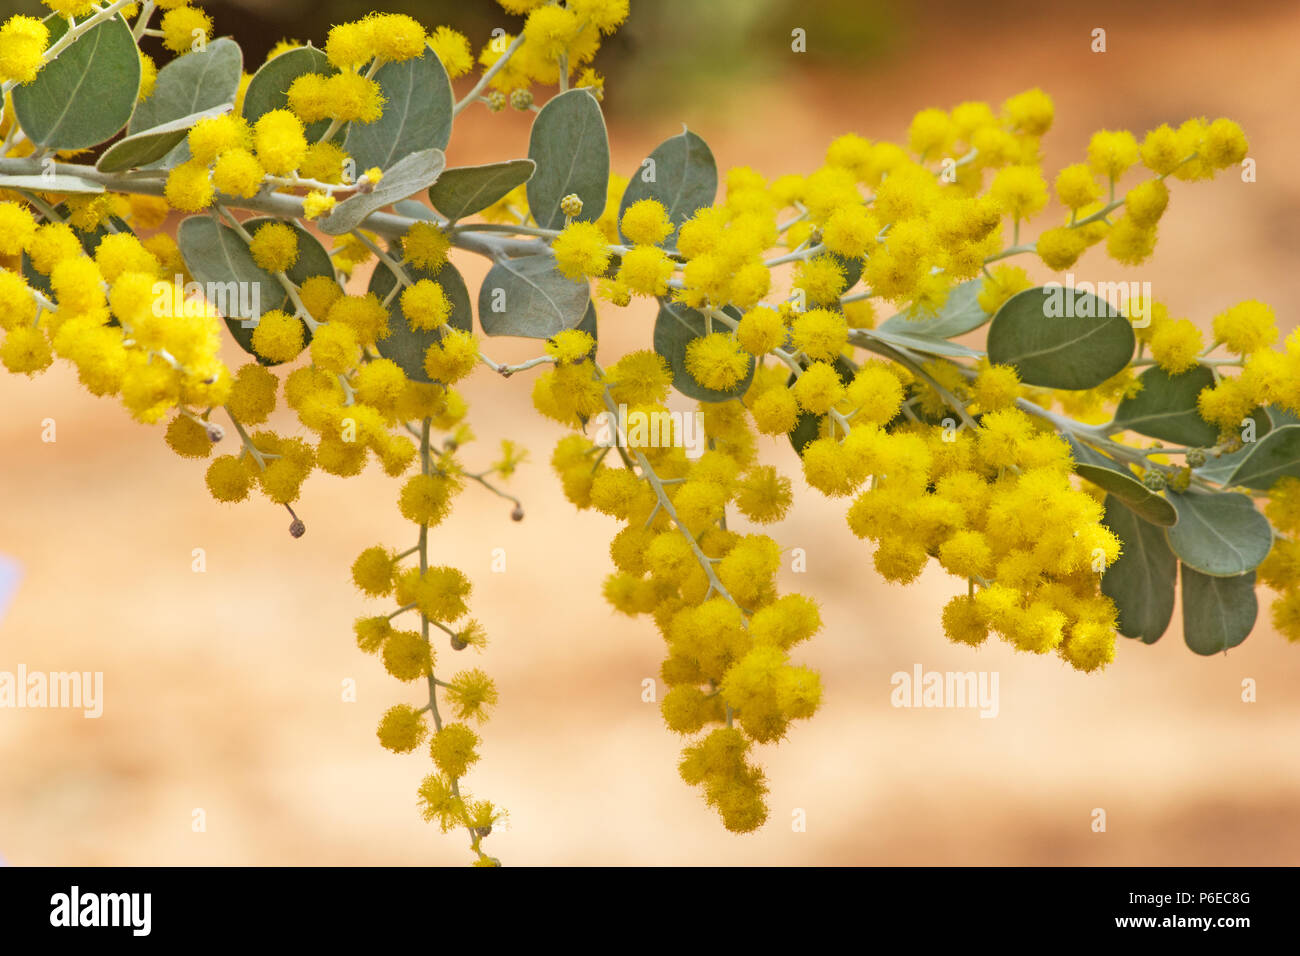 Acacia Podalyriifolia Flowers Stock Photo 210529328 Alamy